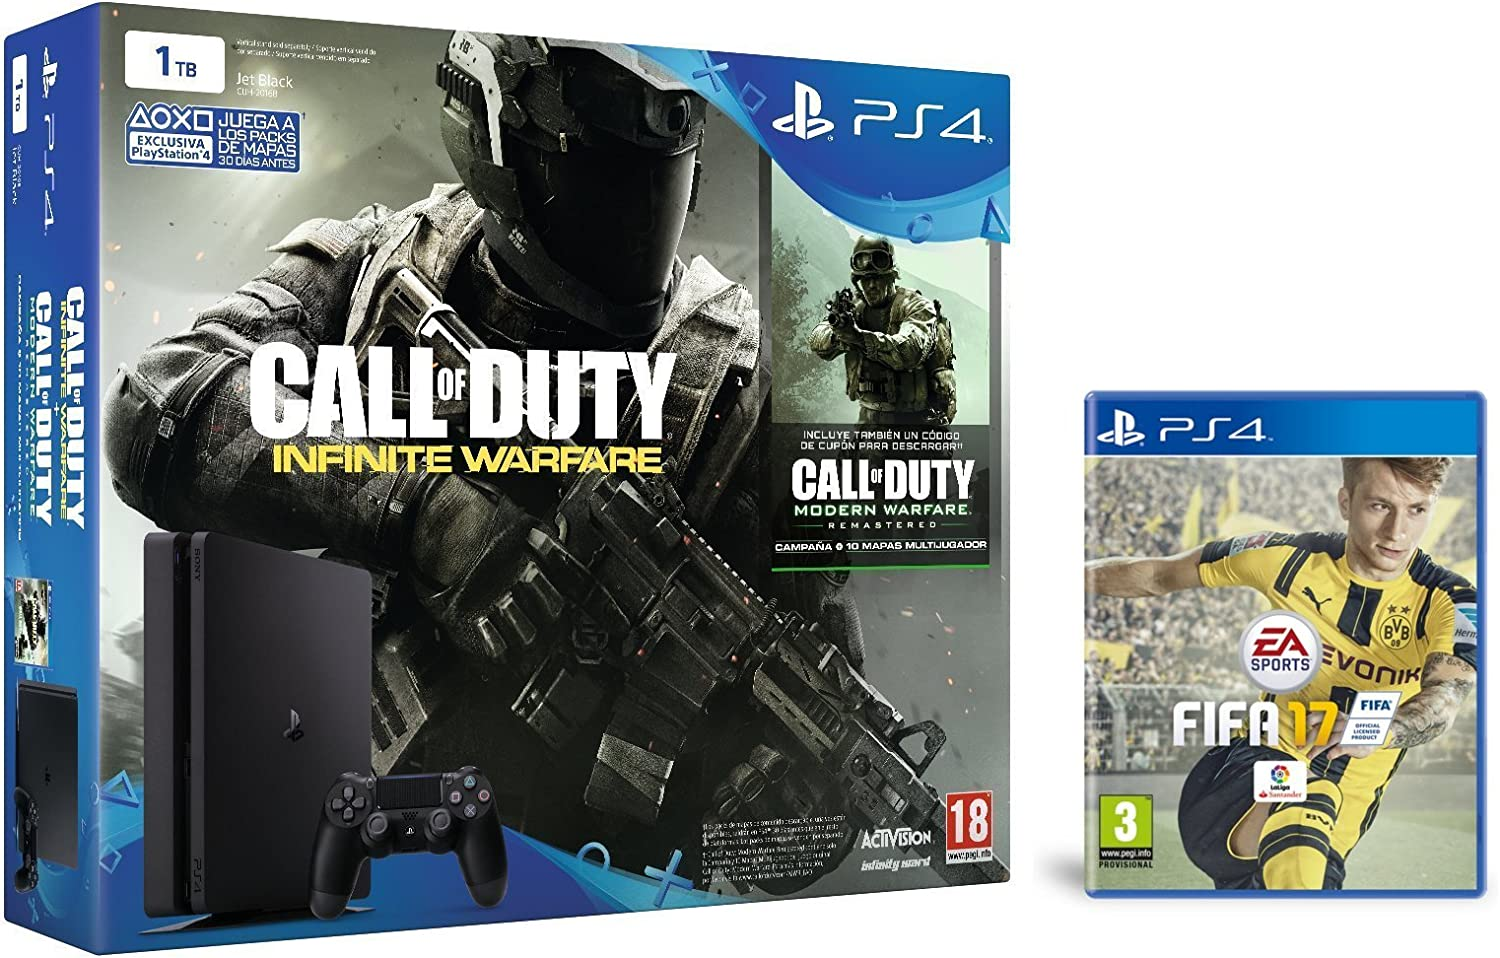 PlayStation 4 Slim (PS4) 1TB - Consola + COD: Infinity Warfare - Legacy Edition + FIFA 17: Amazon.es: Videojuegos